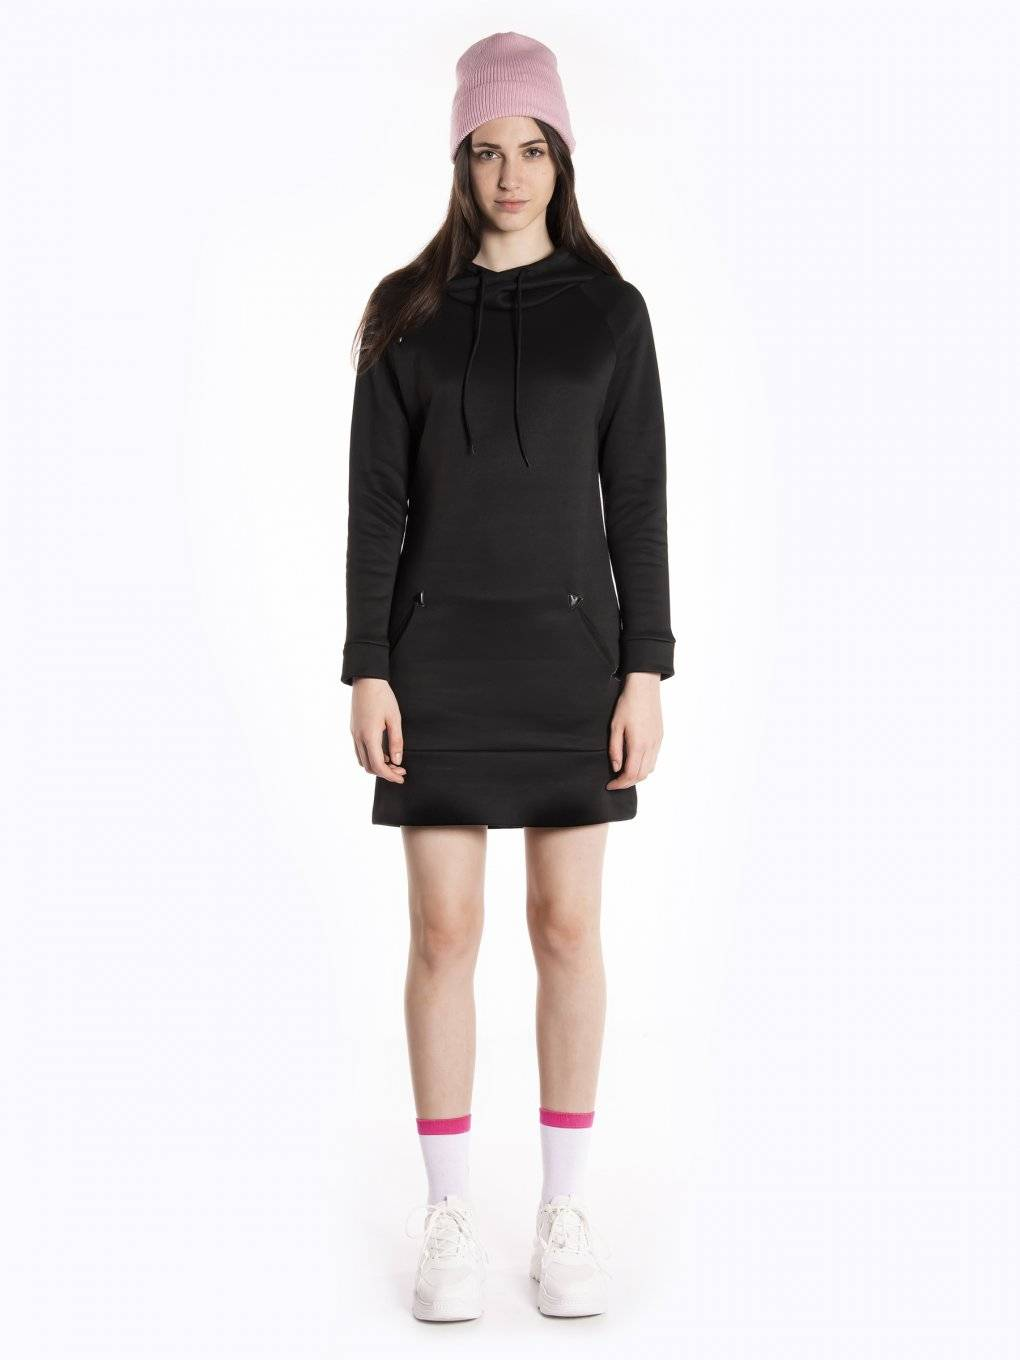 Warm sweatshirt dress